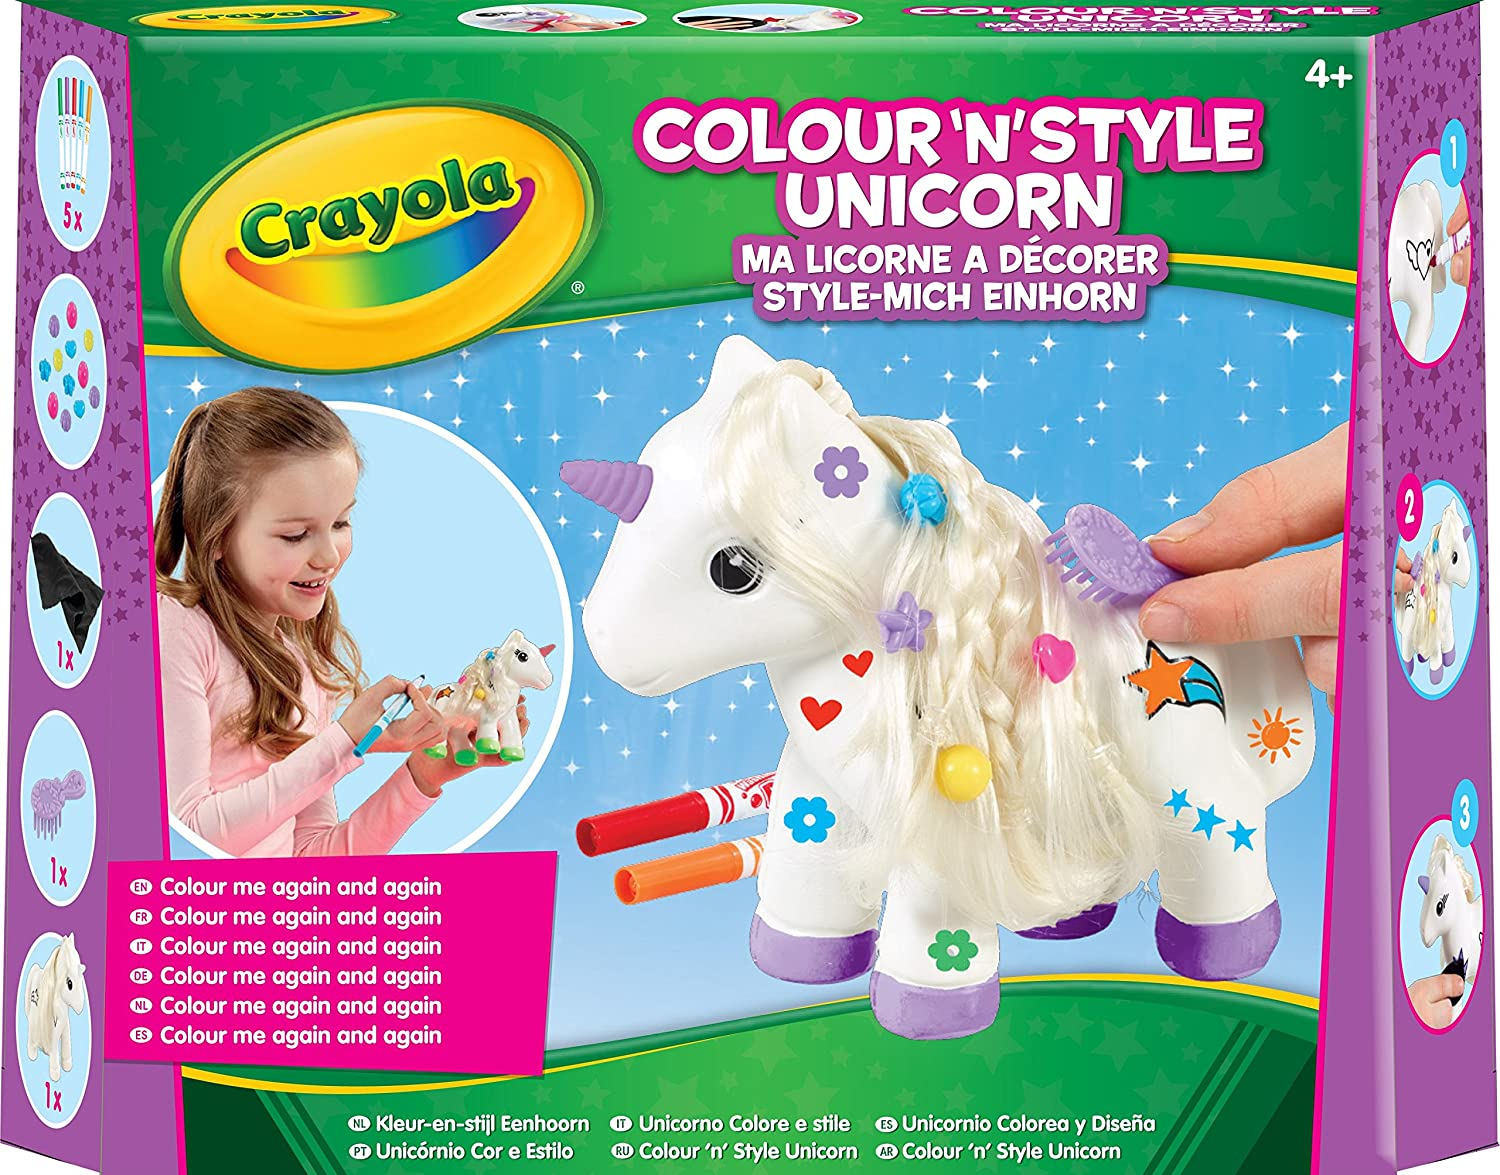 Top 10 Best Craft Kits For 5 Year Old Girls 2018 2019 On